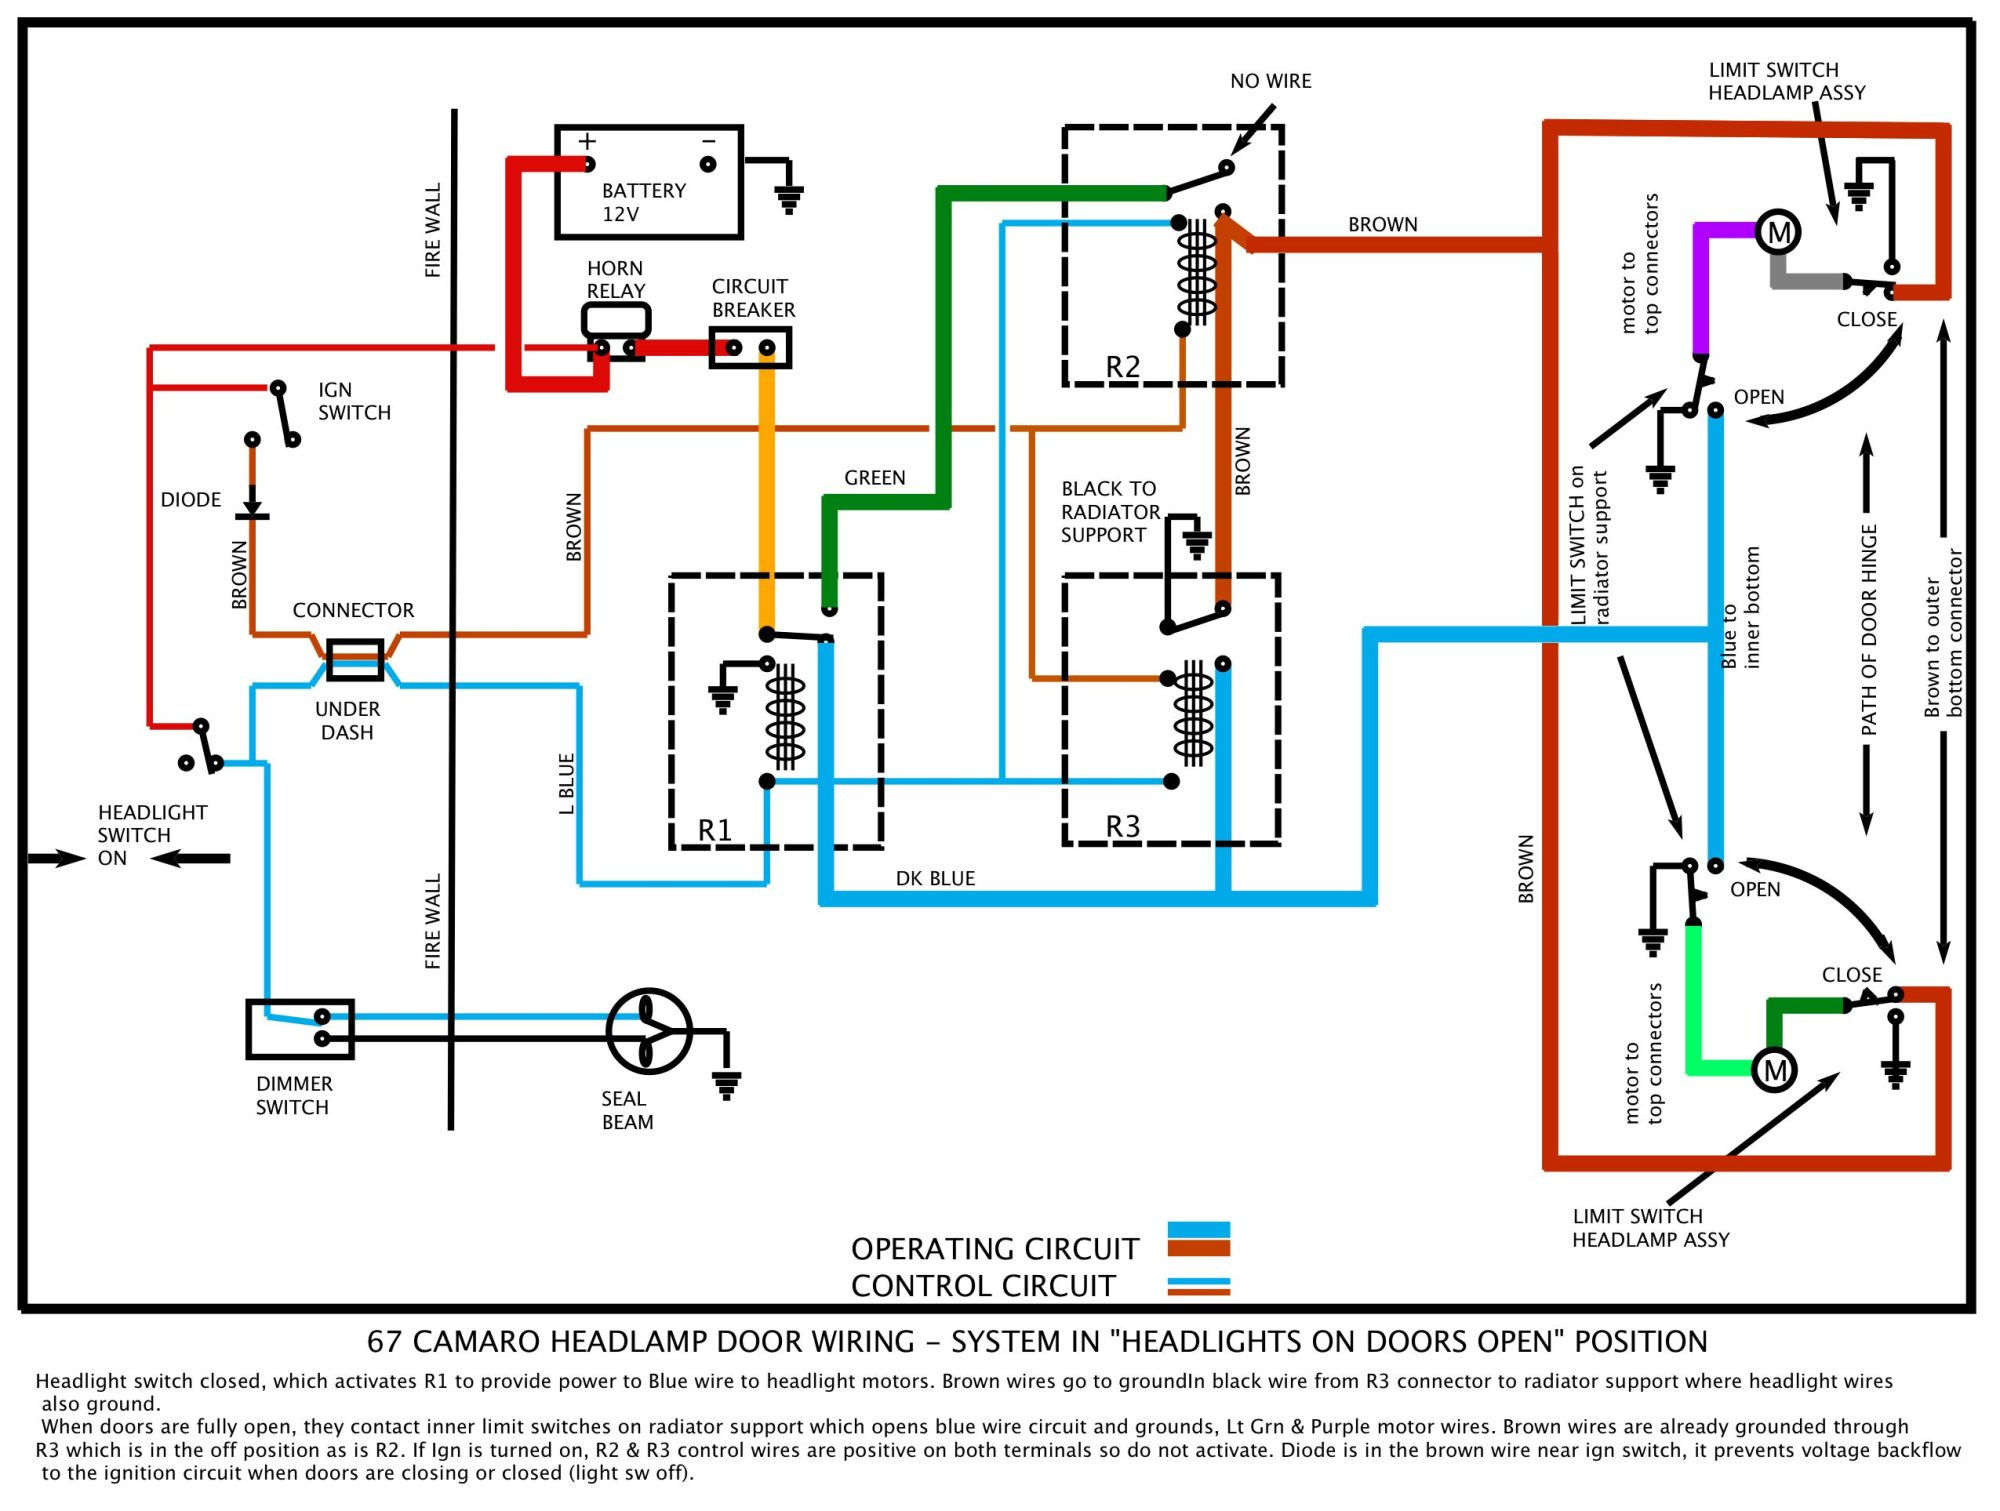 hight resolution of wiring diagram for headlight dimmer switch wiring diagrams recent car dimmer switch wiring